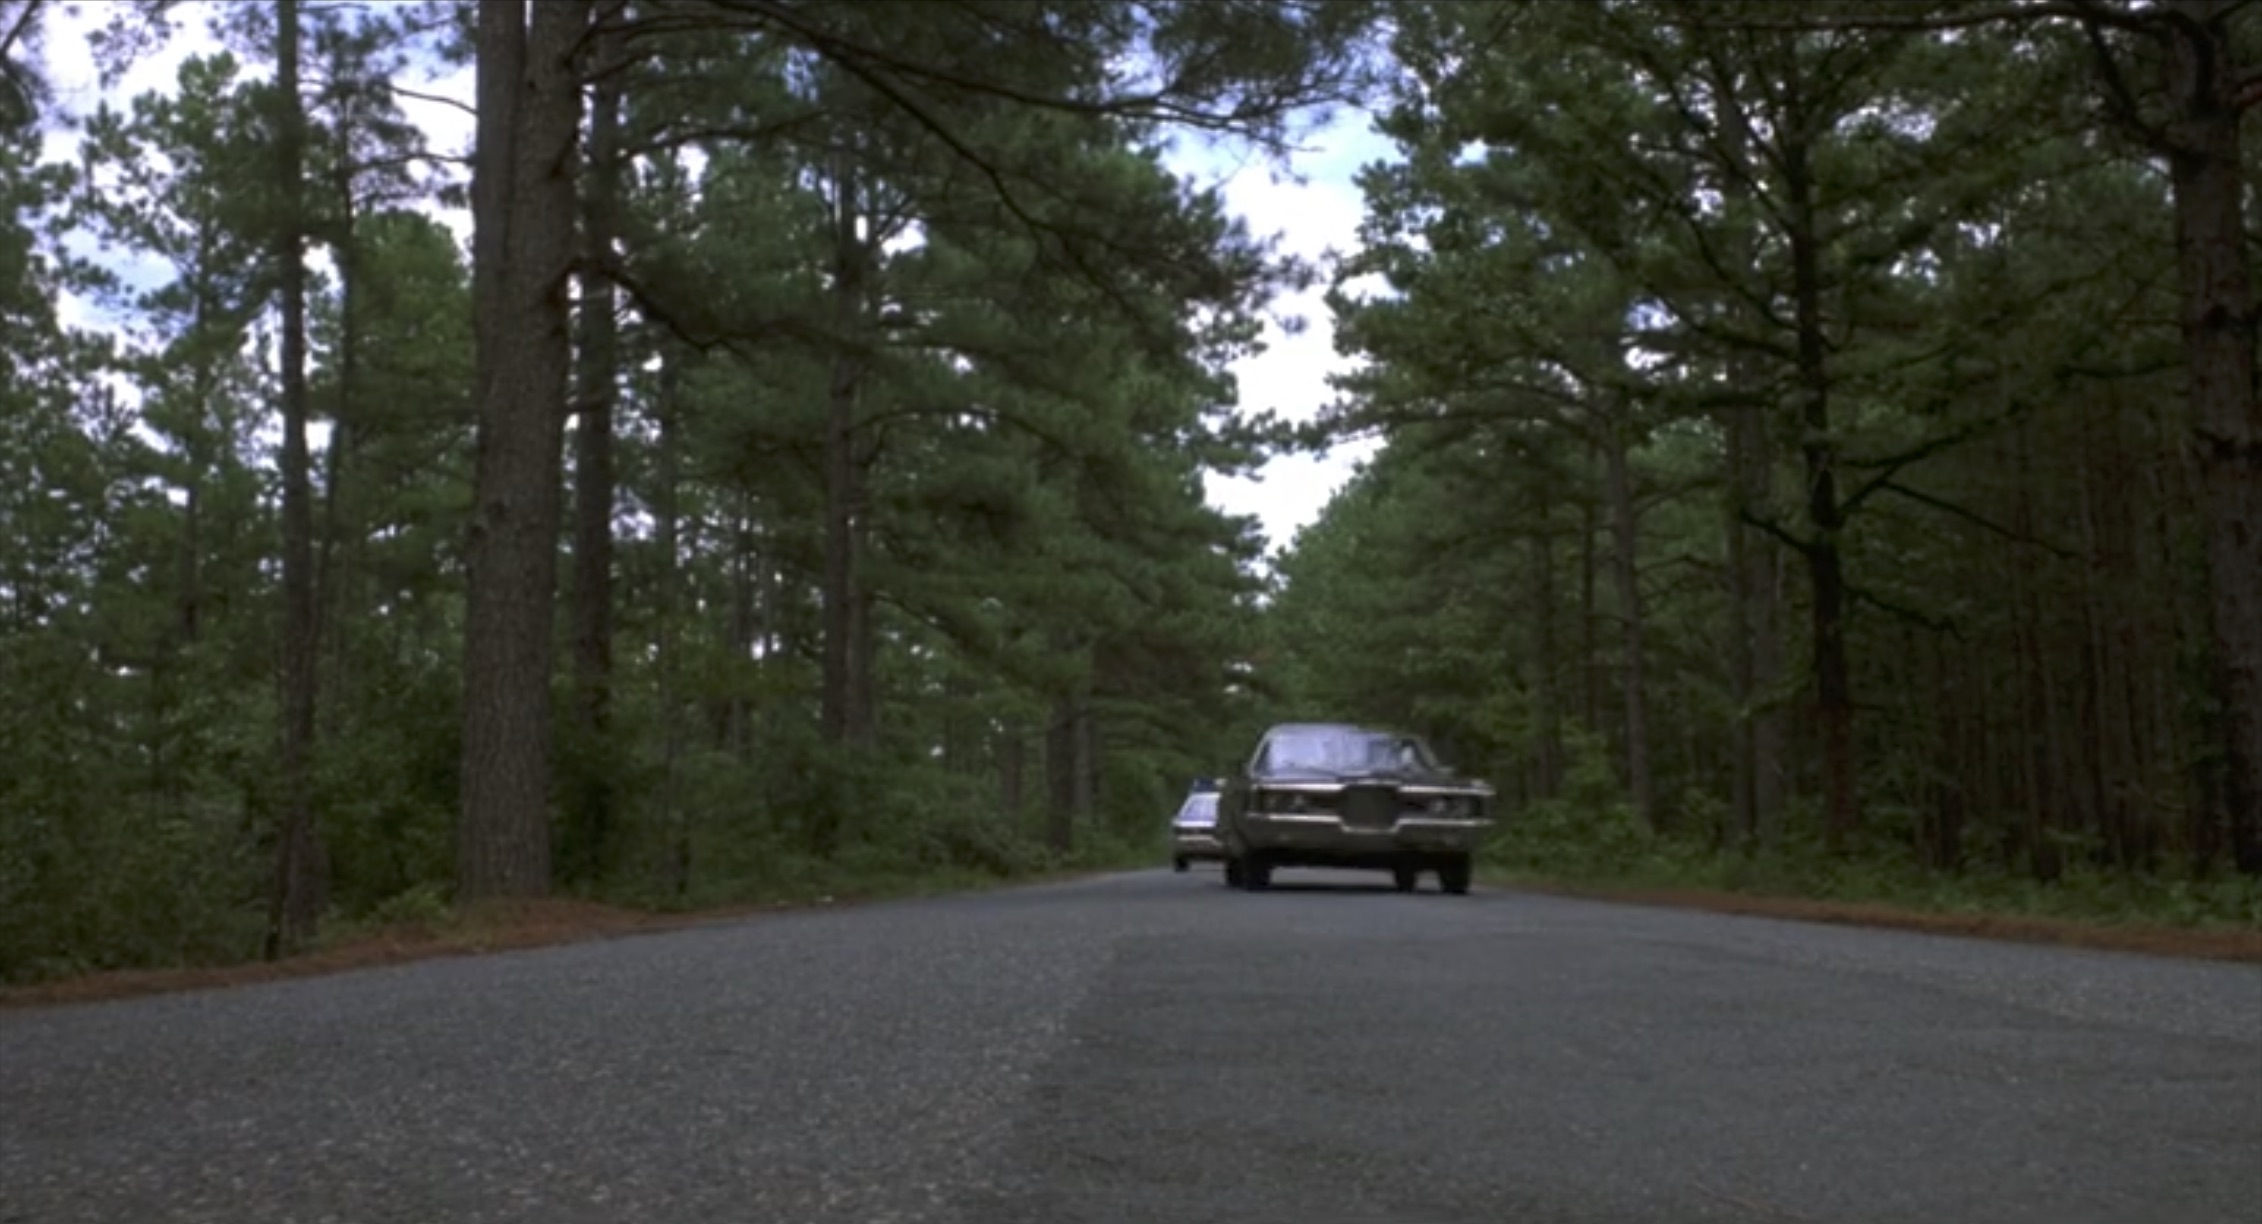 Burt Reynolds White Lightning chase in the woods